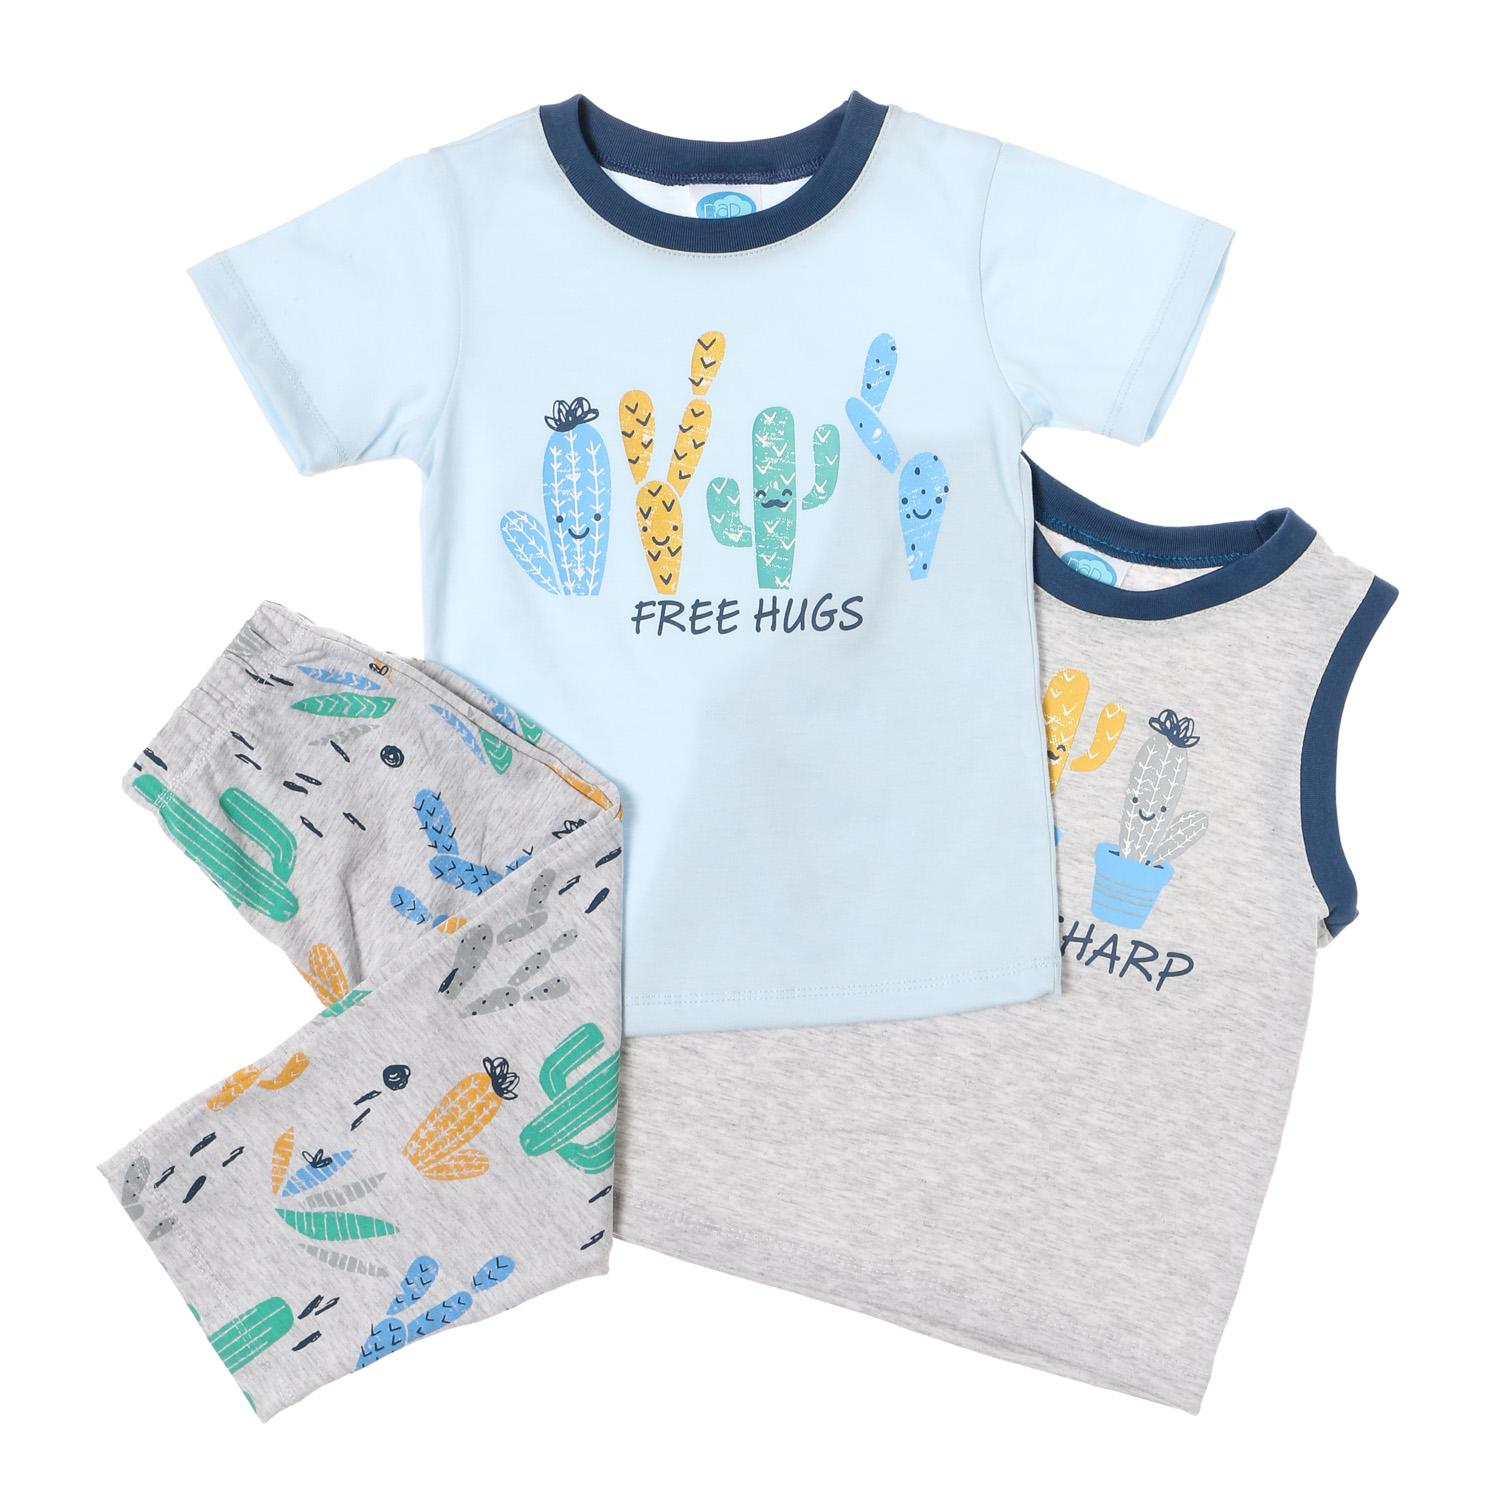 29ce072698fb Baby Clothes for sale - Baby Clothing Online Deals & Prices in ...